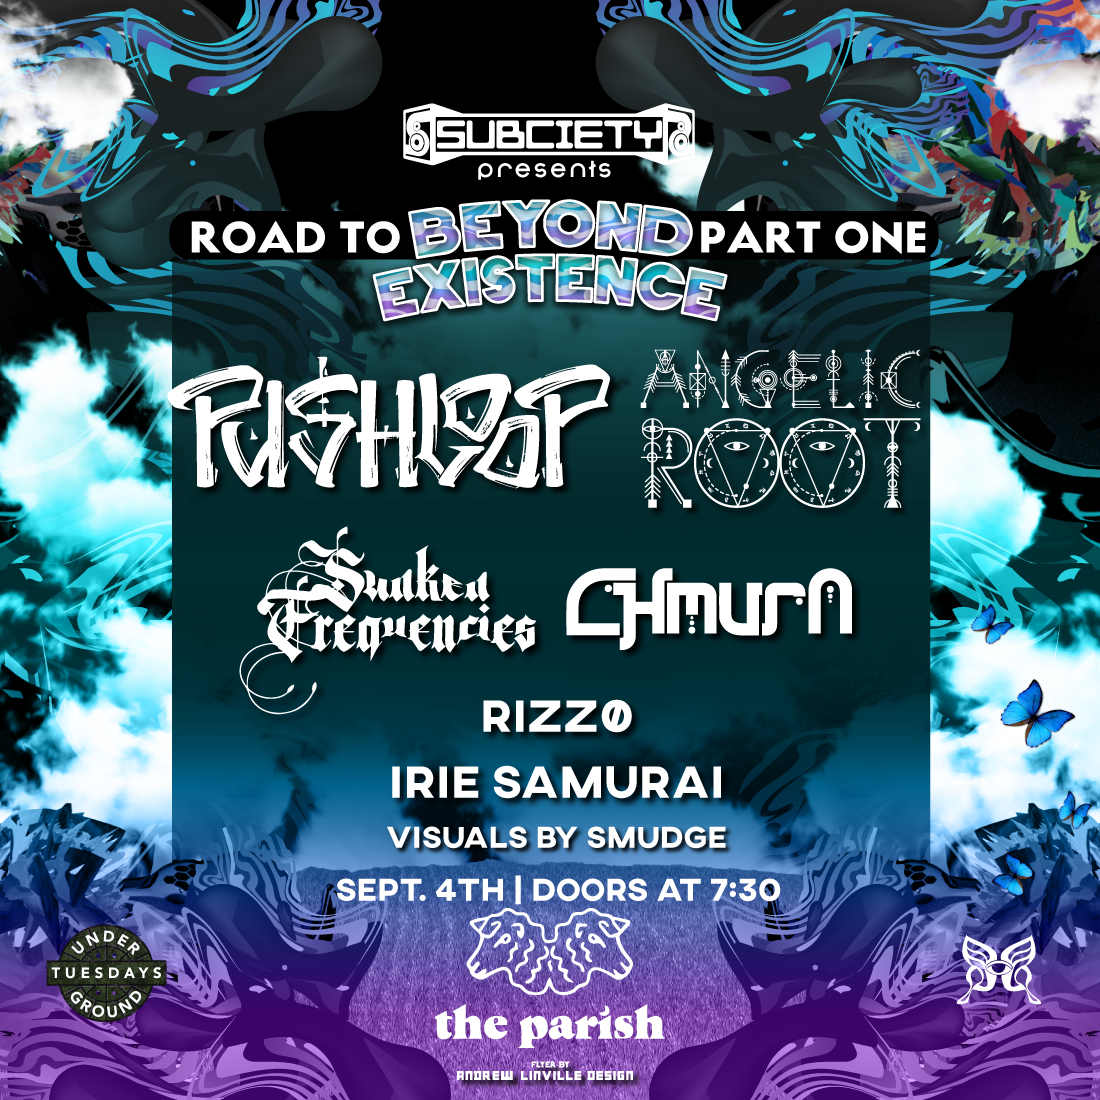 Road to Beyond Existence Pt. 1 ft. Pushloop, Angelic Root: